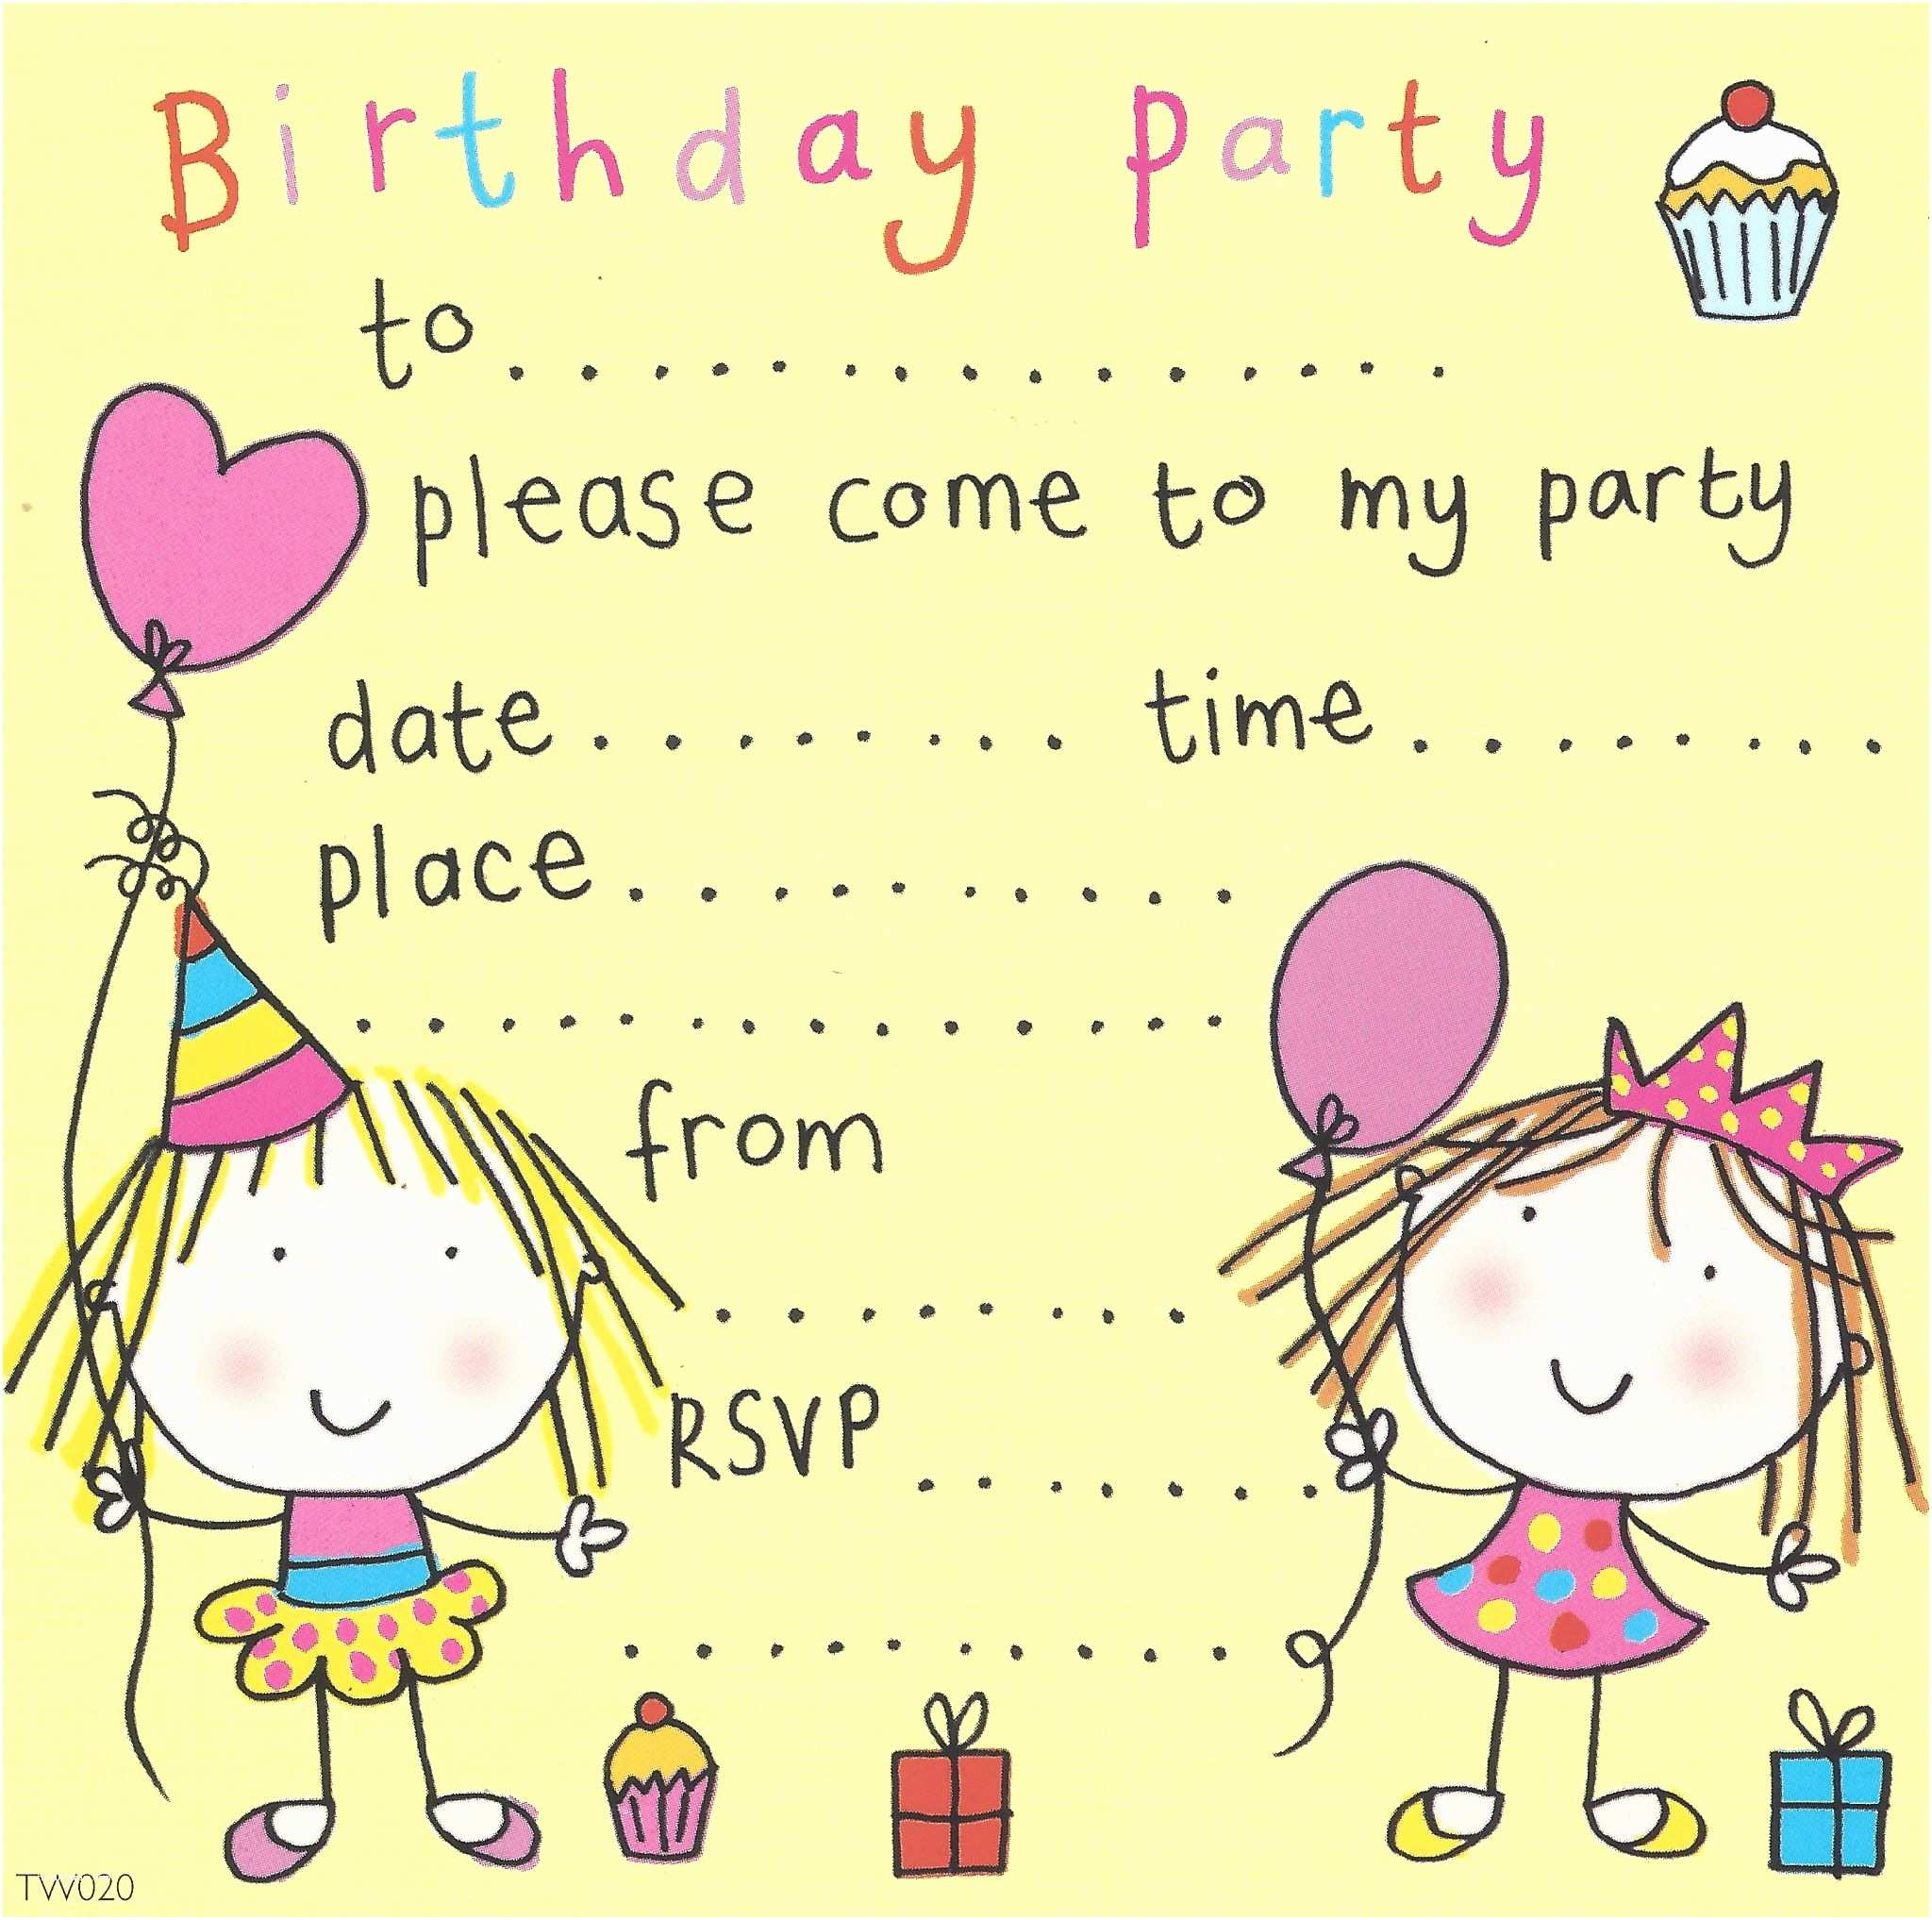 Girl Birthday Party Invitations Party Invitations Birthday Party Invitations Kids Party